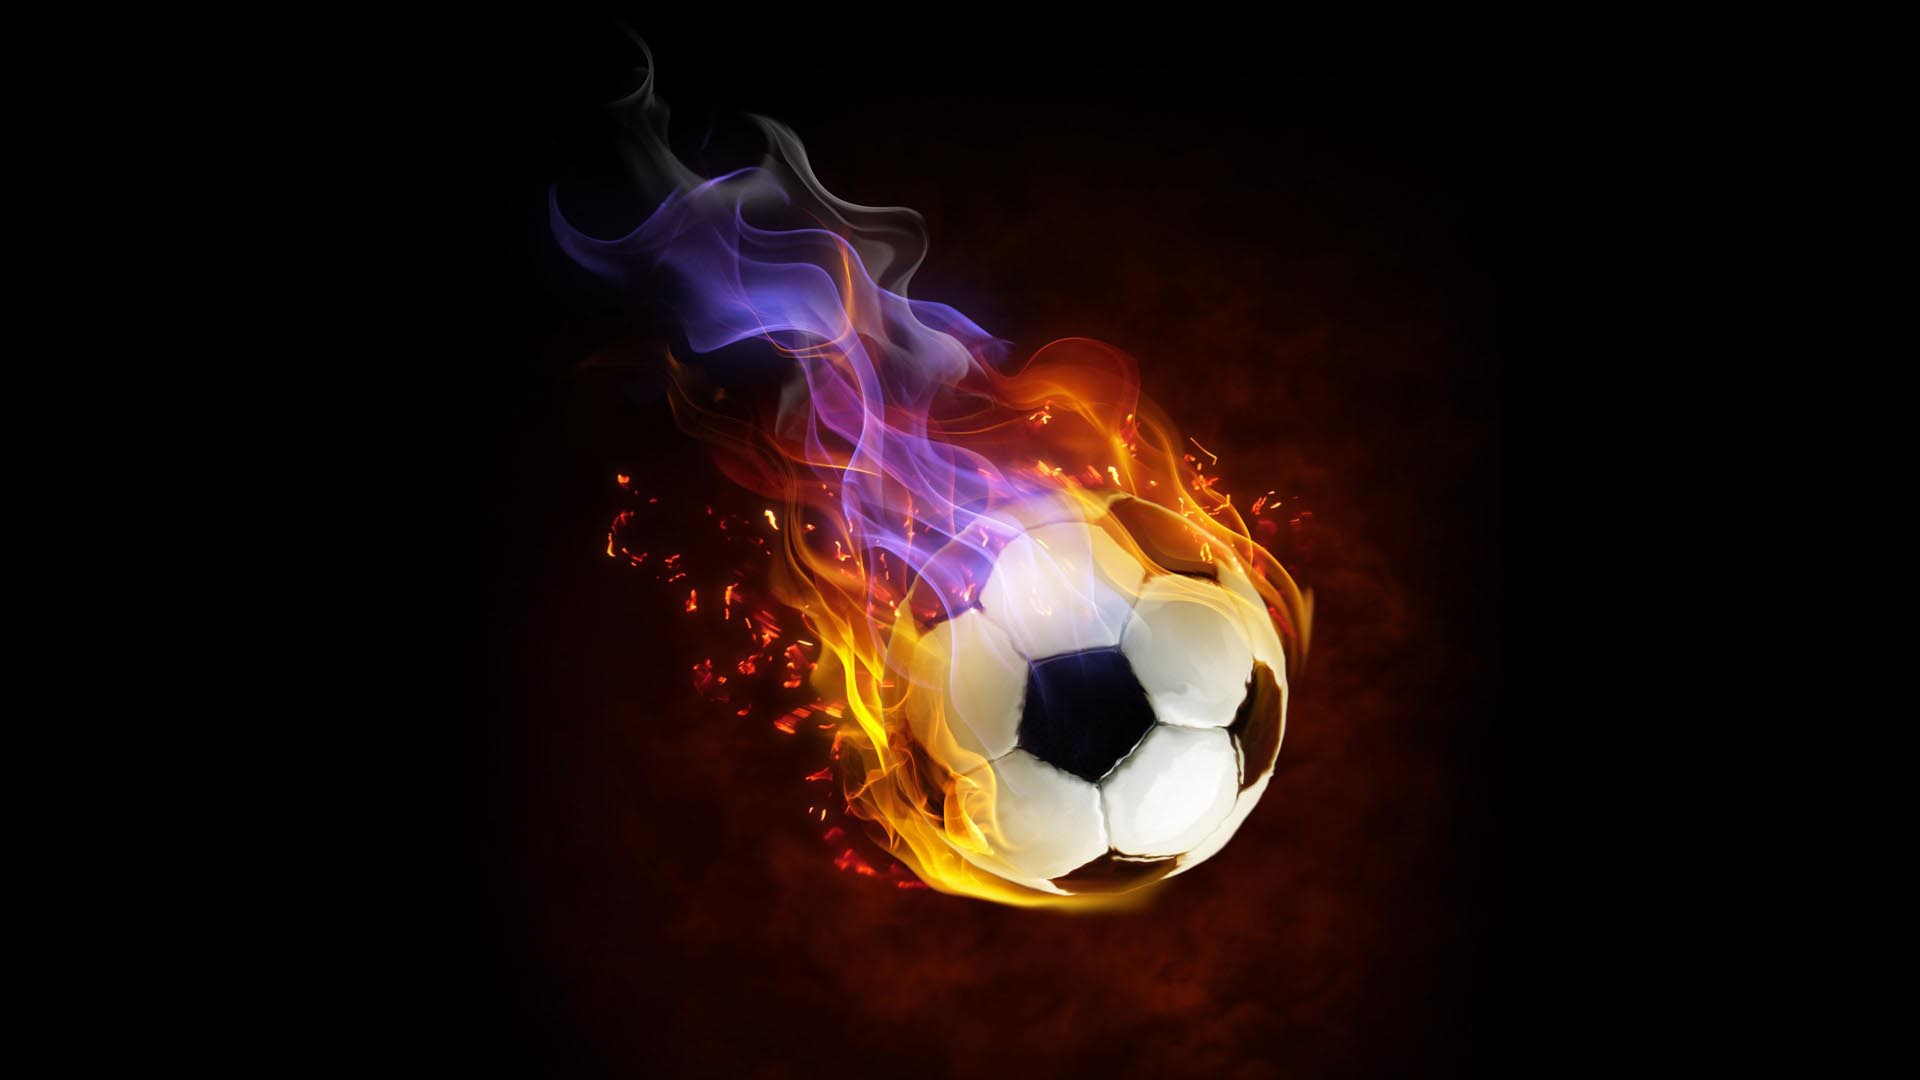 HD Cool Soccer Wallpapers 1920x1080